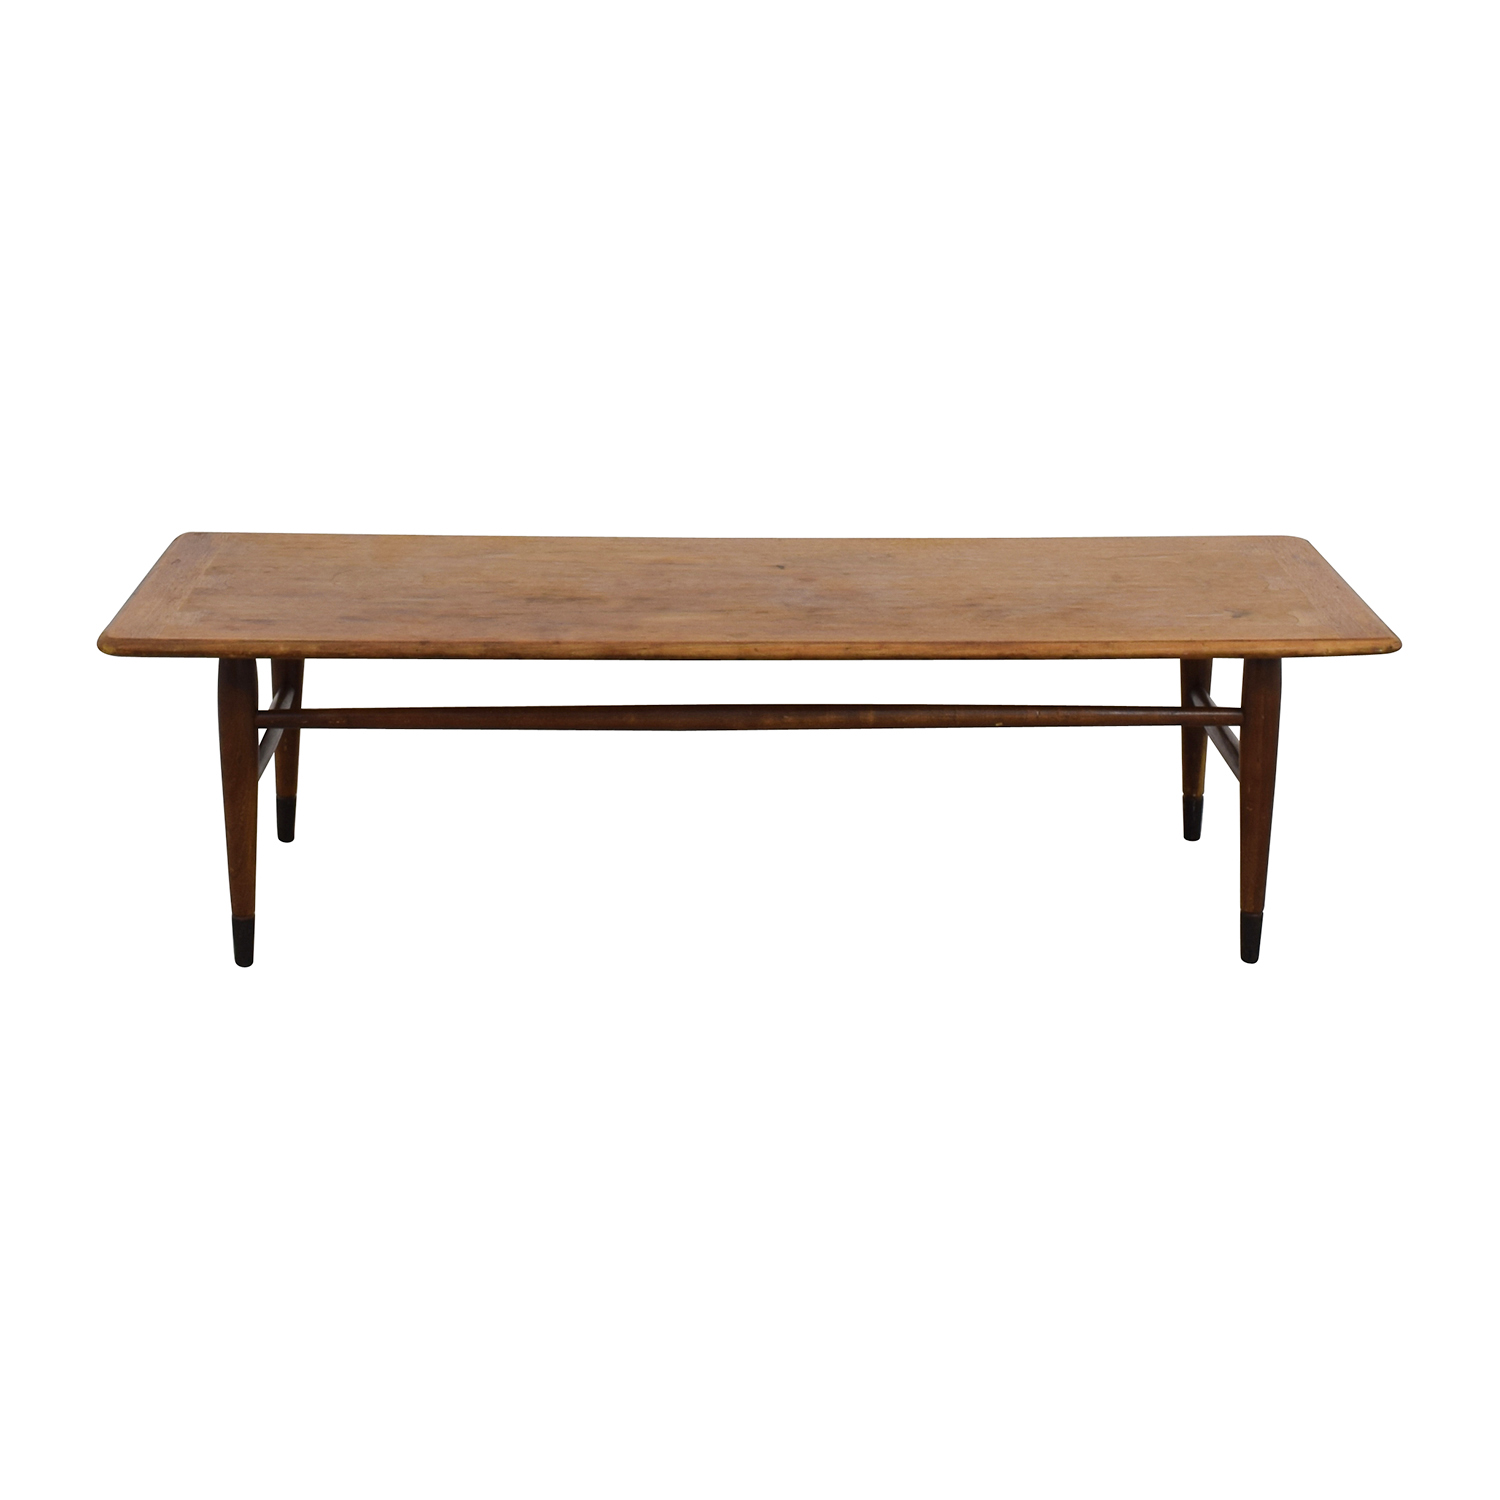 Cb2 Mid Century Coffee Table: IKEA String Coffee Table With Casters / Tables